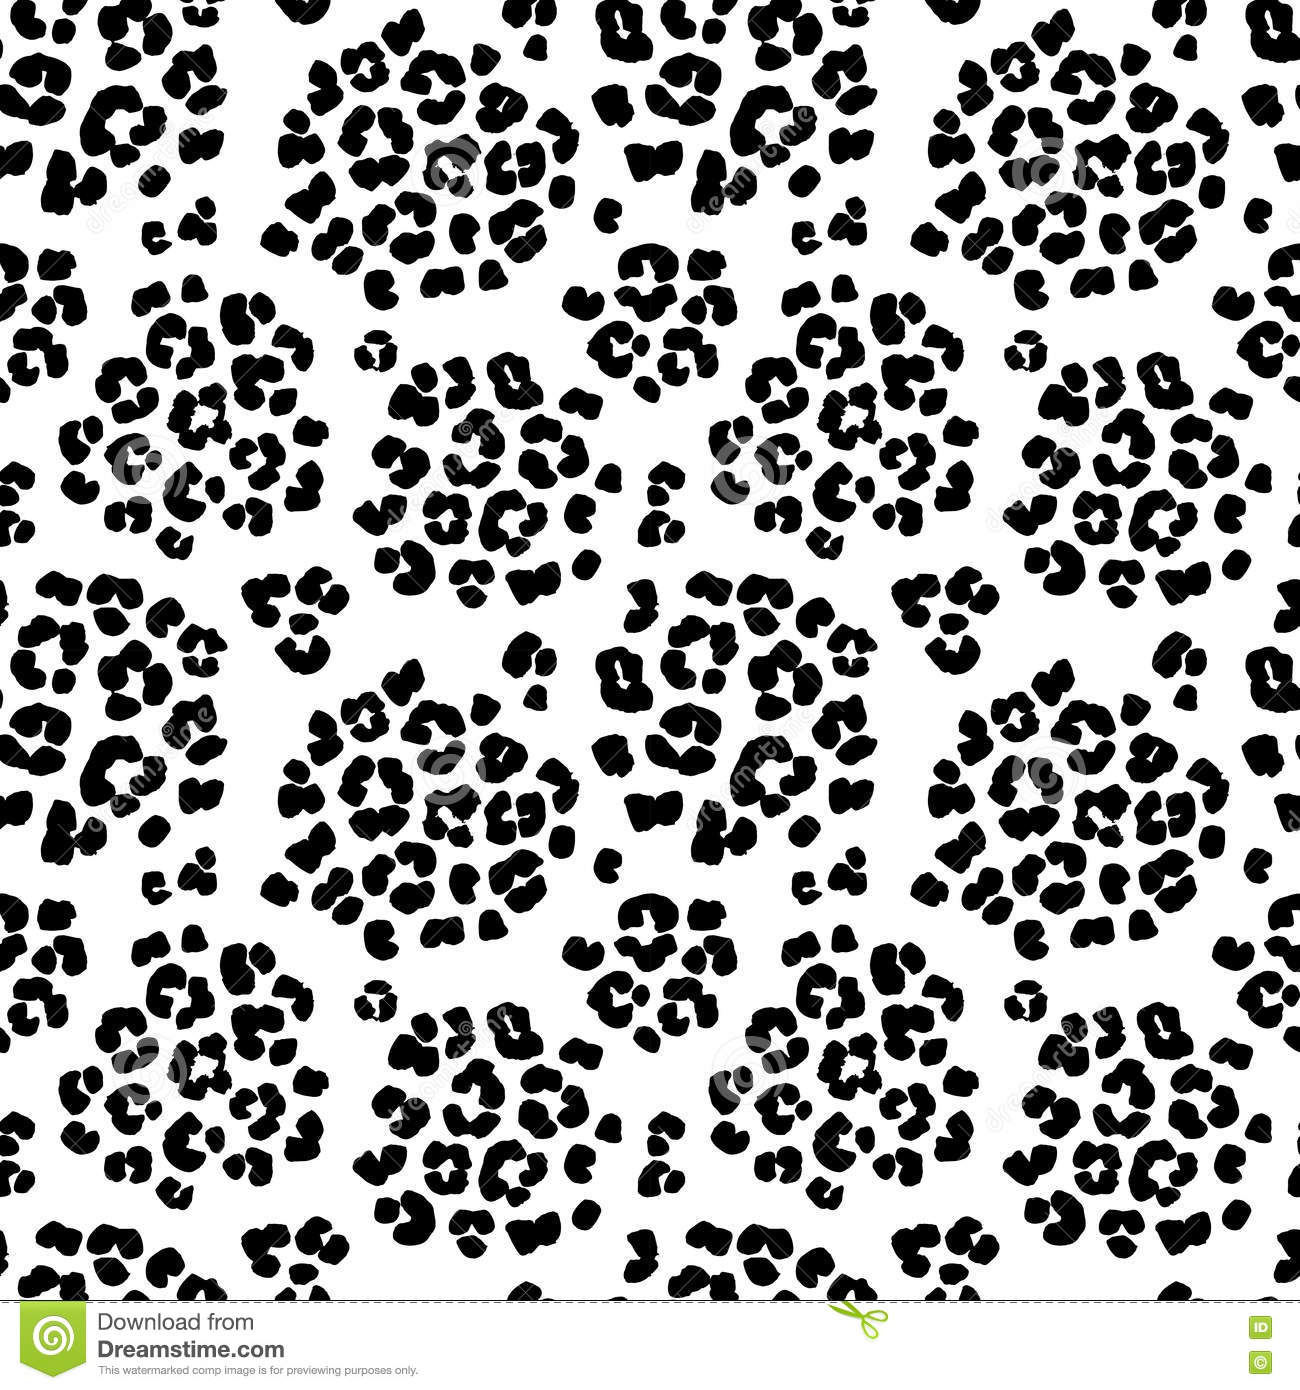 Leopard Print Seamless Background Pattern Black And White